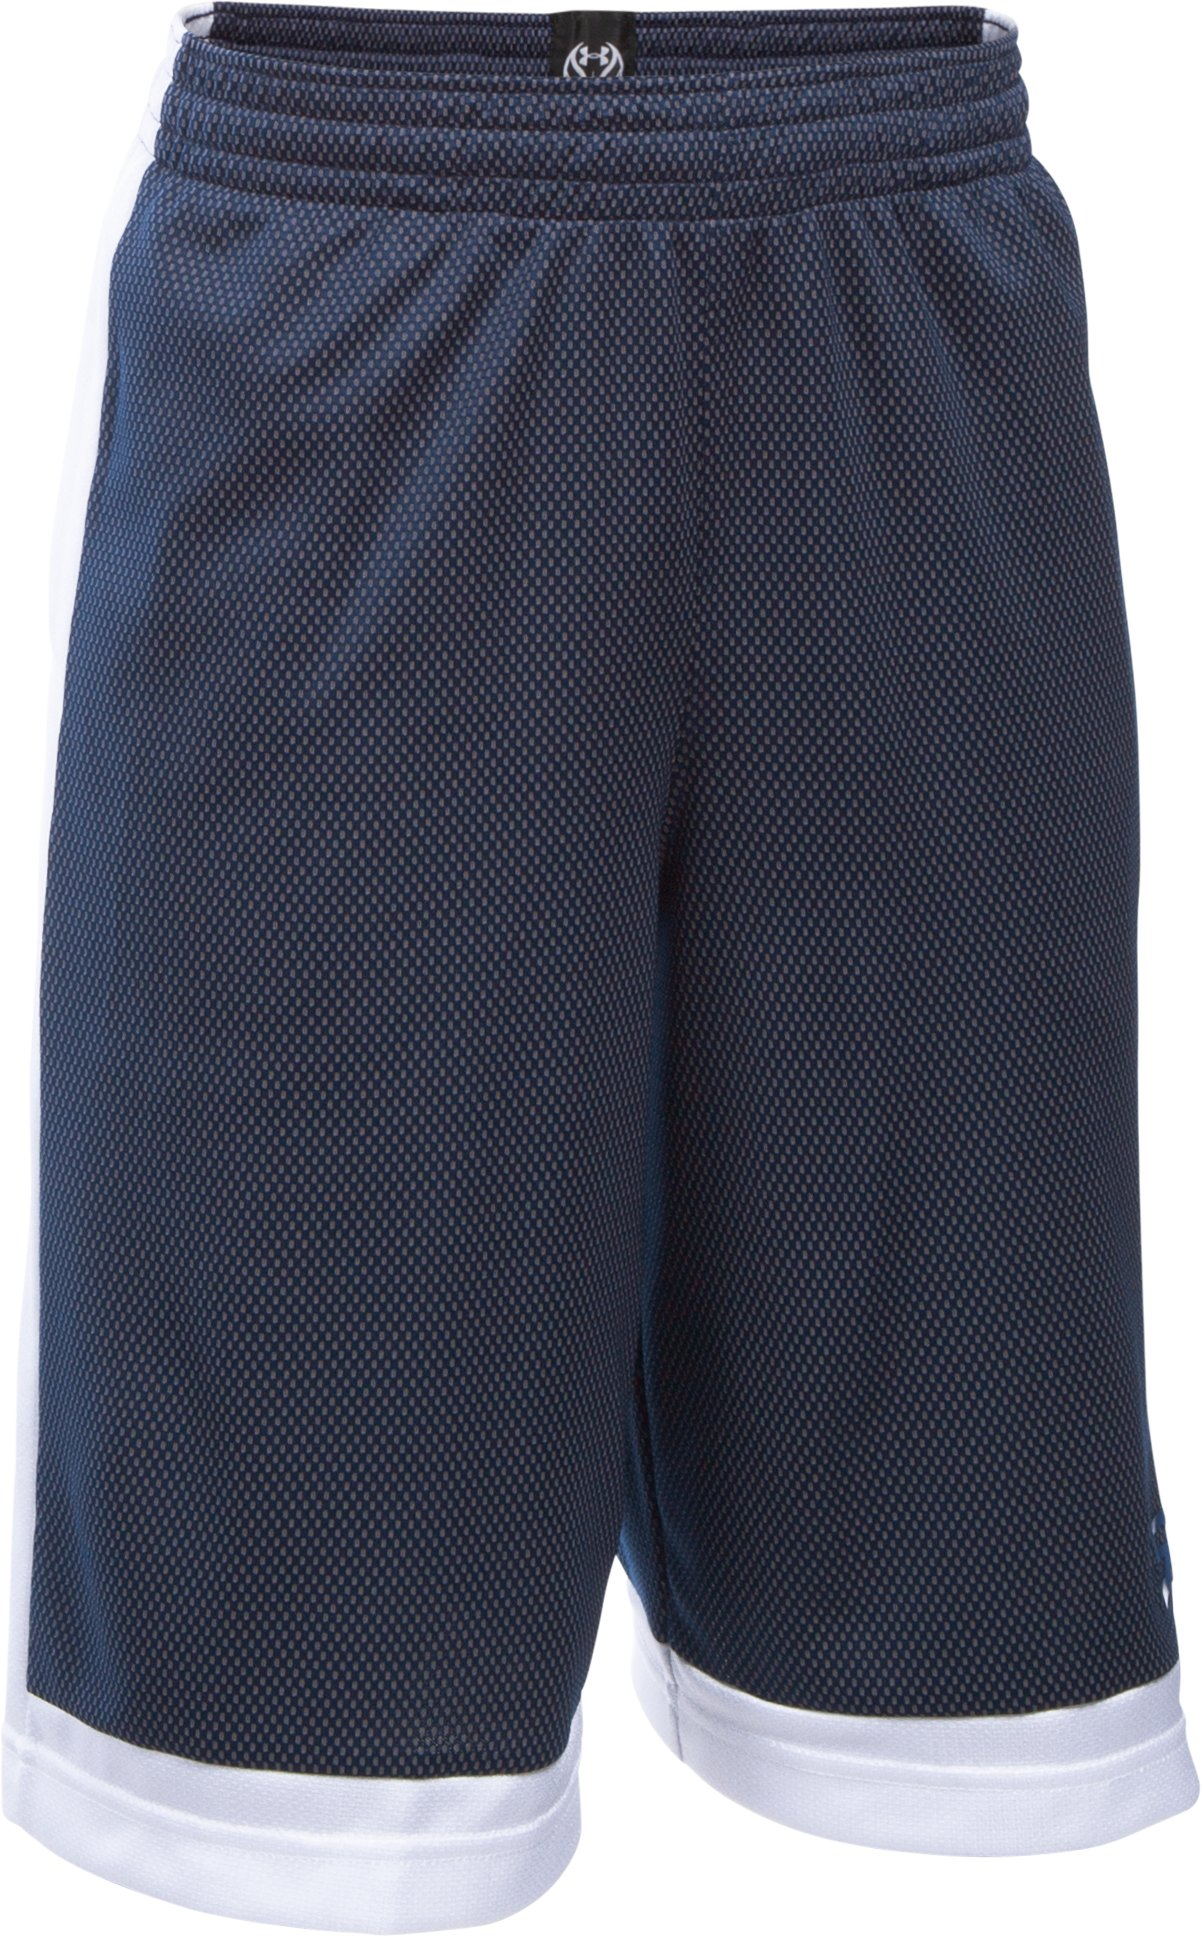 Boys' SC30 Essentials Shorts, Midnight Navy